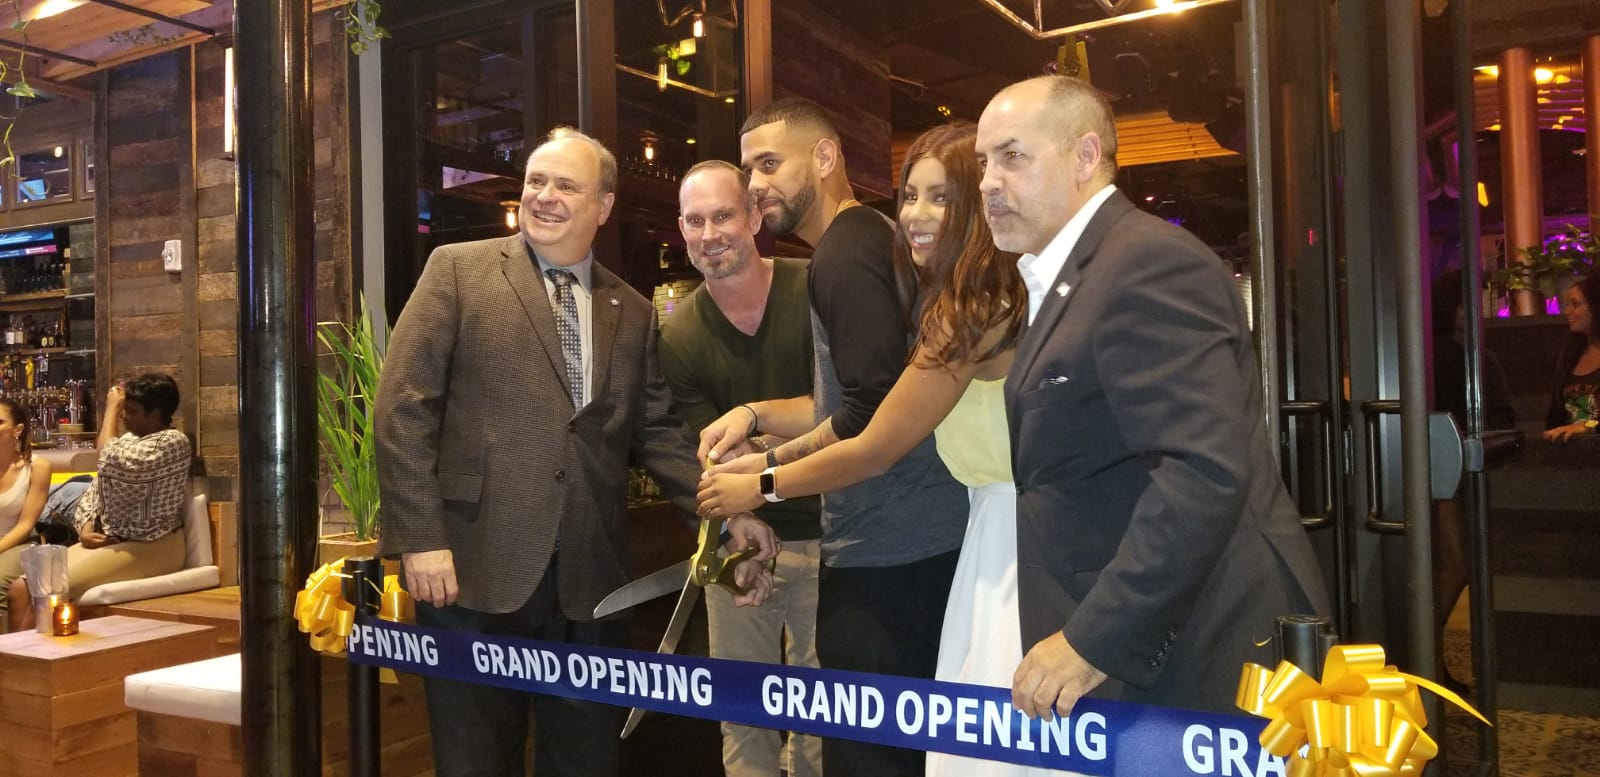 Ribbon Cutting with Mayor and Managers of Copper Blues Improv hosted by the Doral Chamber of Commerce.